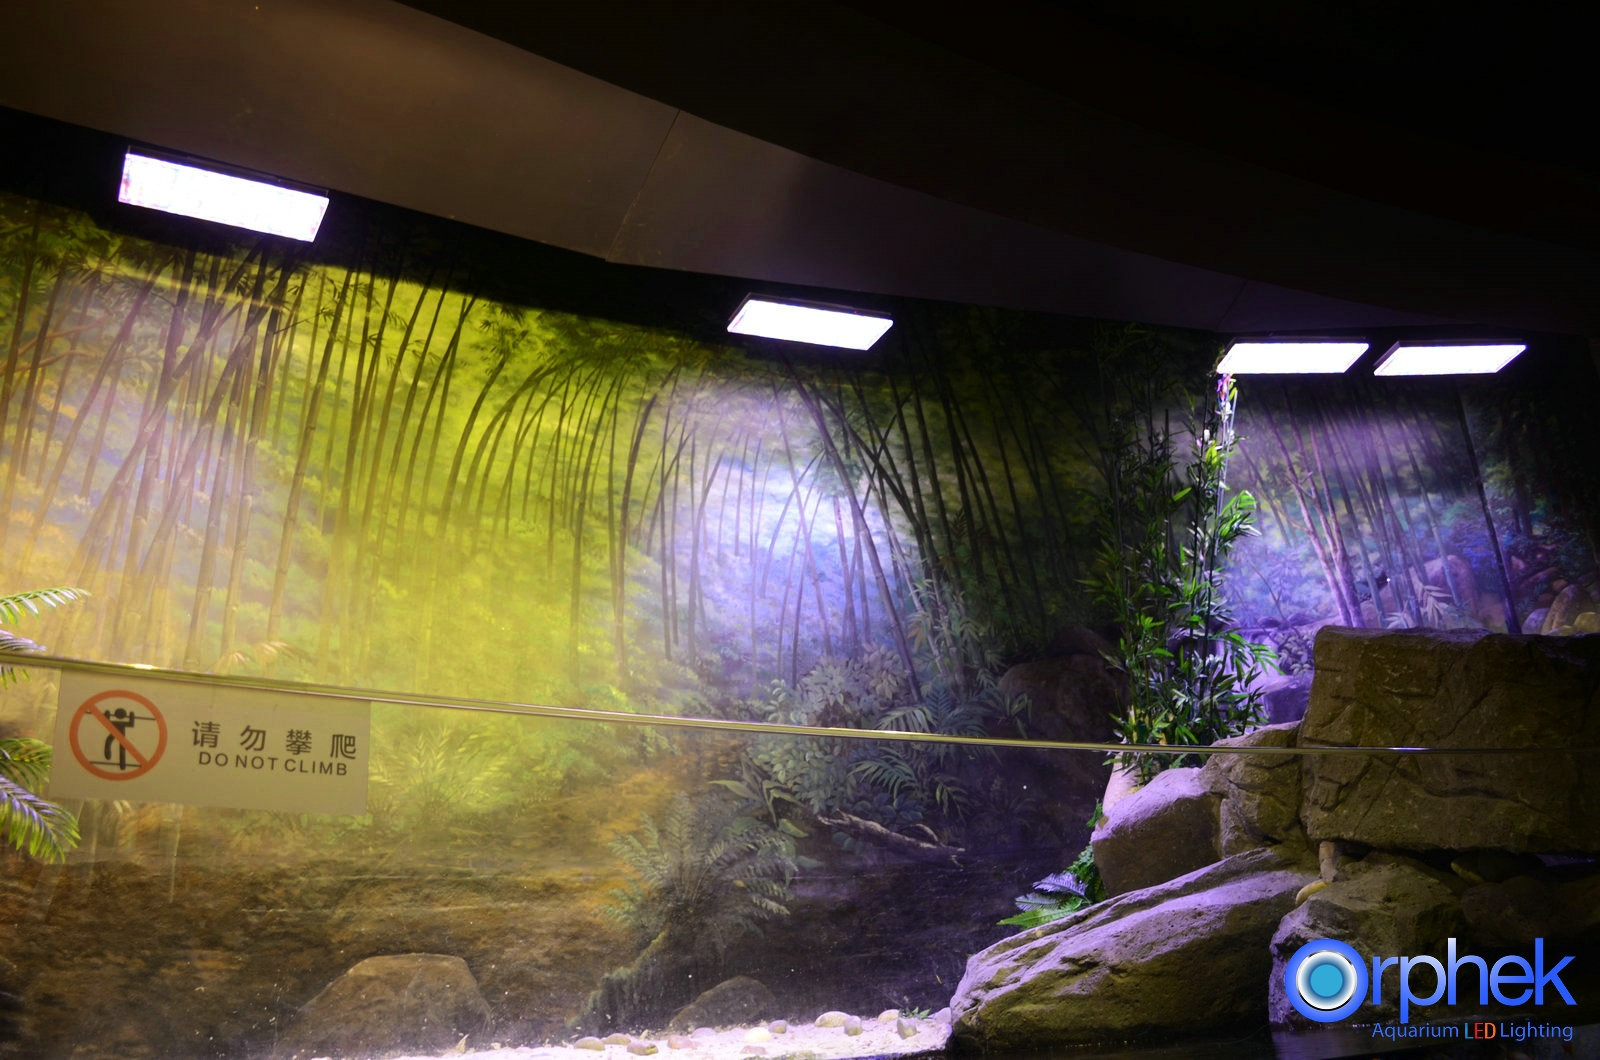 Aquarium luminaire LED